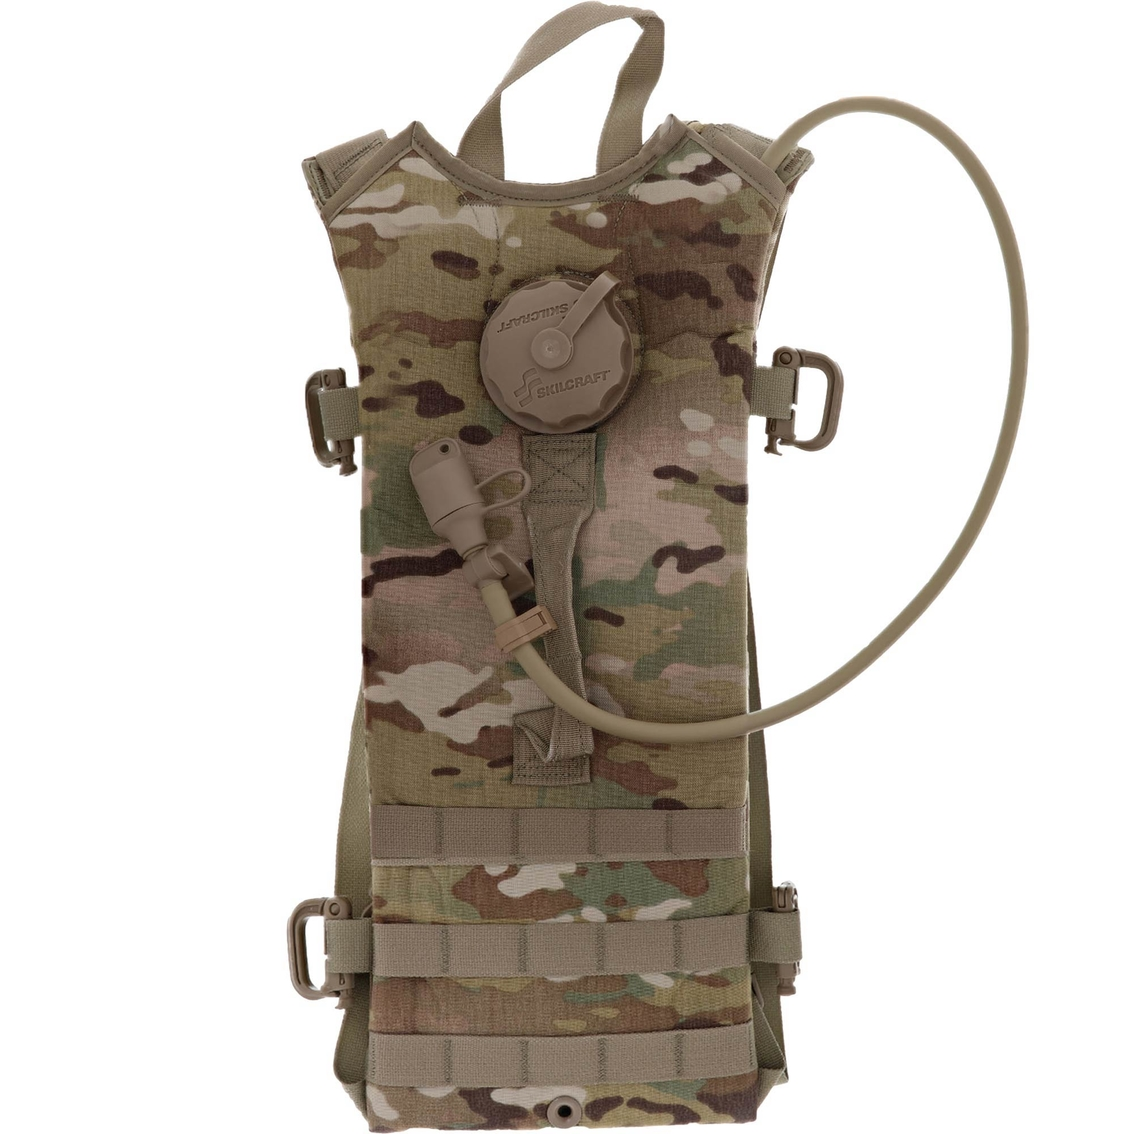 Infant Carrier Military Brigade Qm Molle Hydration Carrier 100 Oz Reservoir Oef